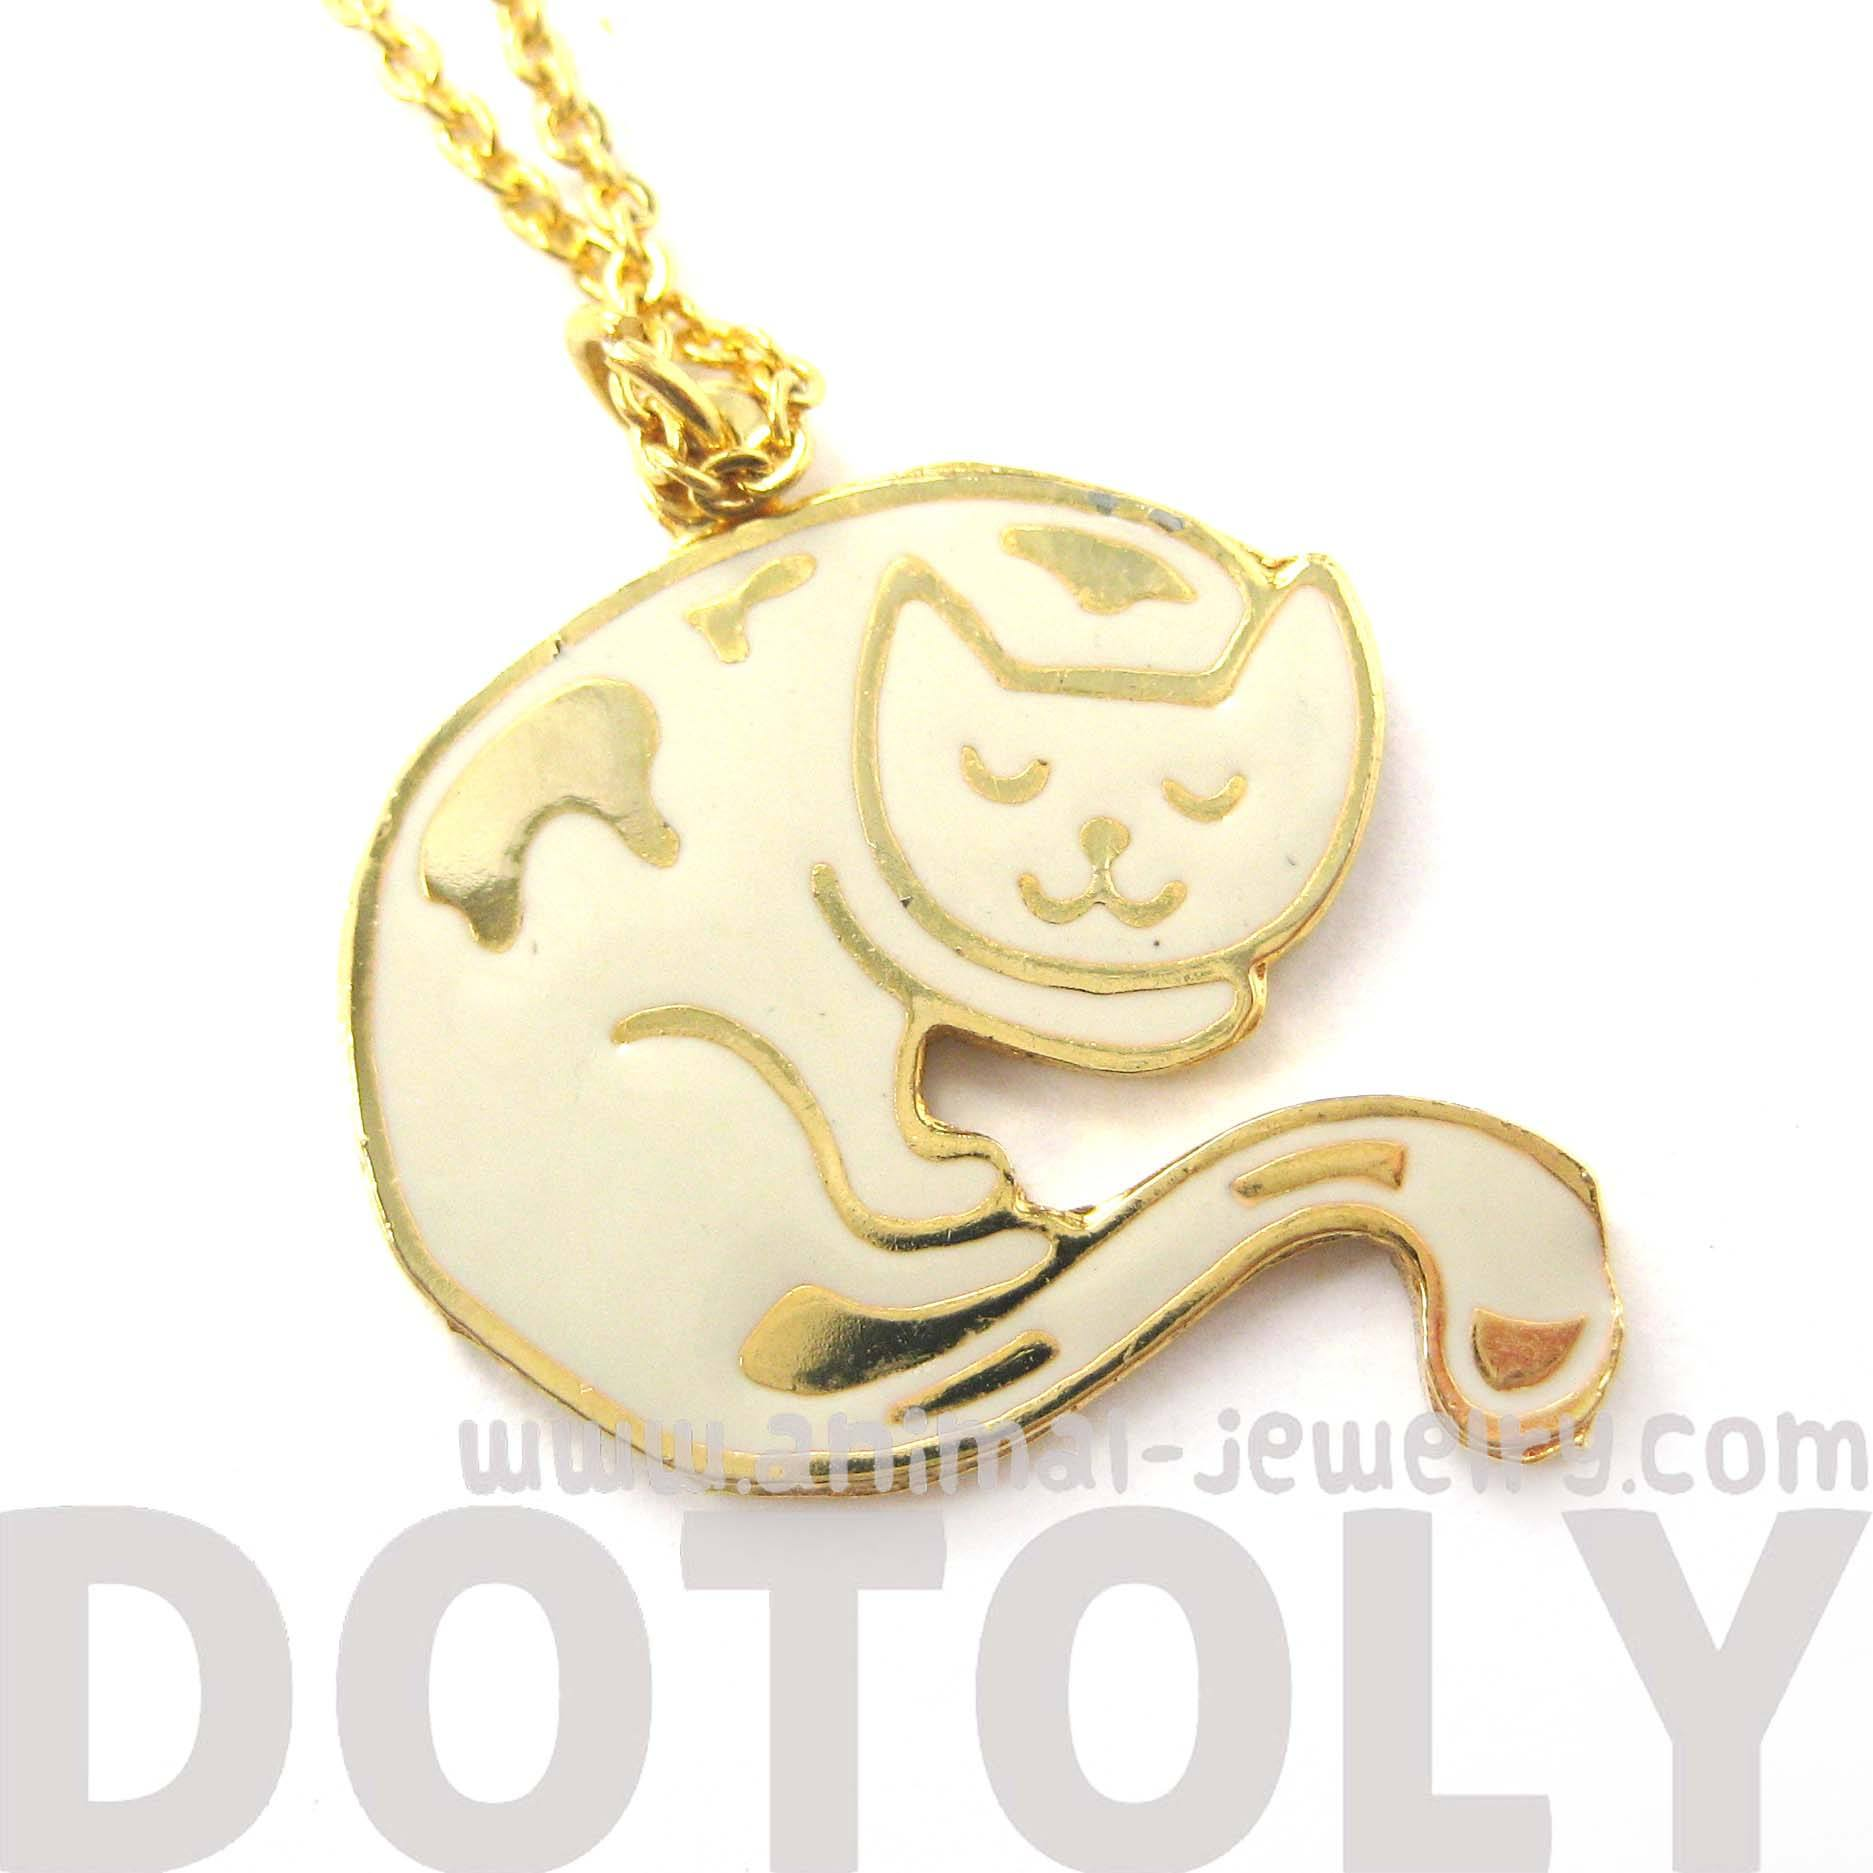 handmade-sleeping-kitty-cat-shaped-animal-pendant-necklace-in-white-limited-edition